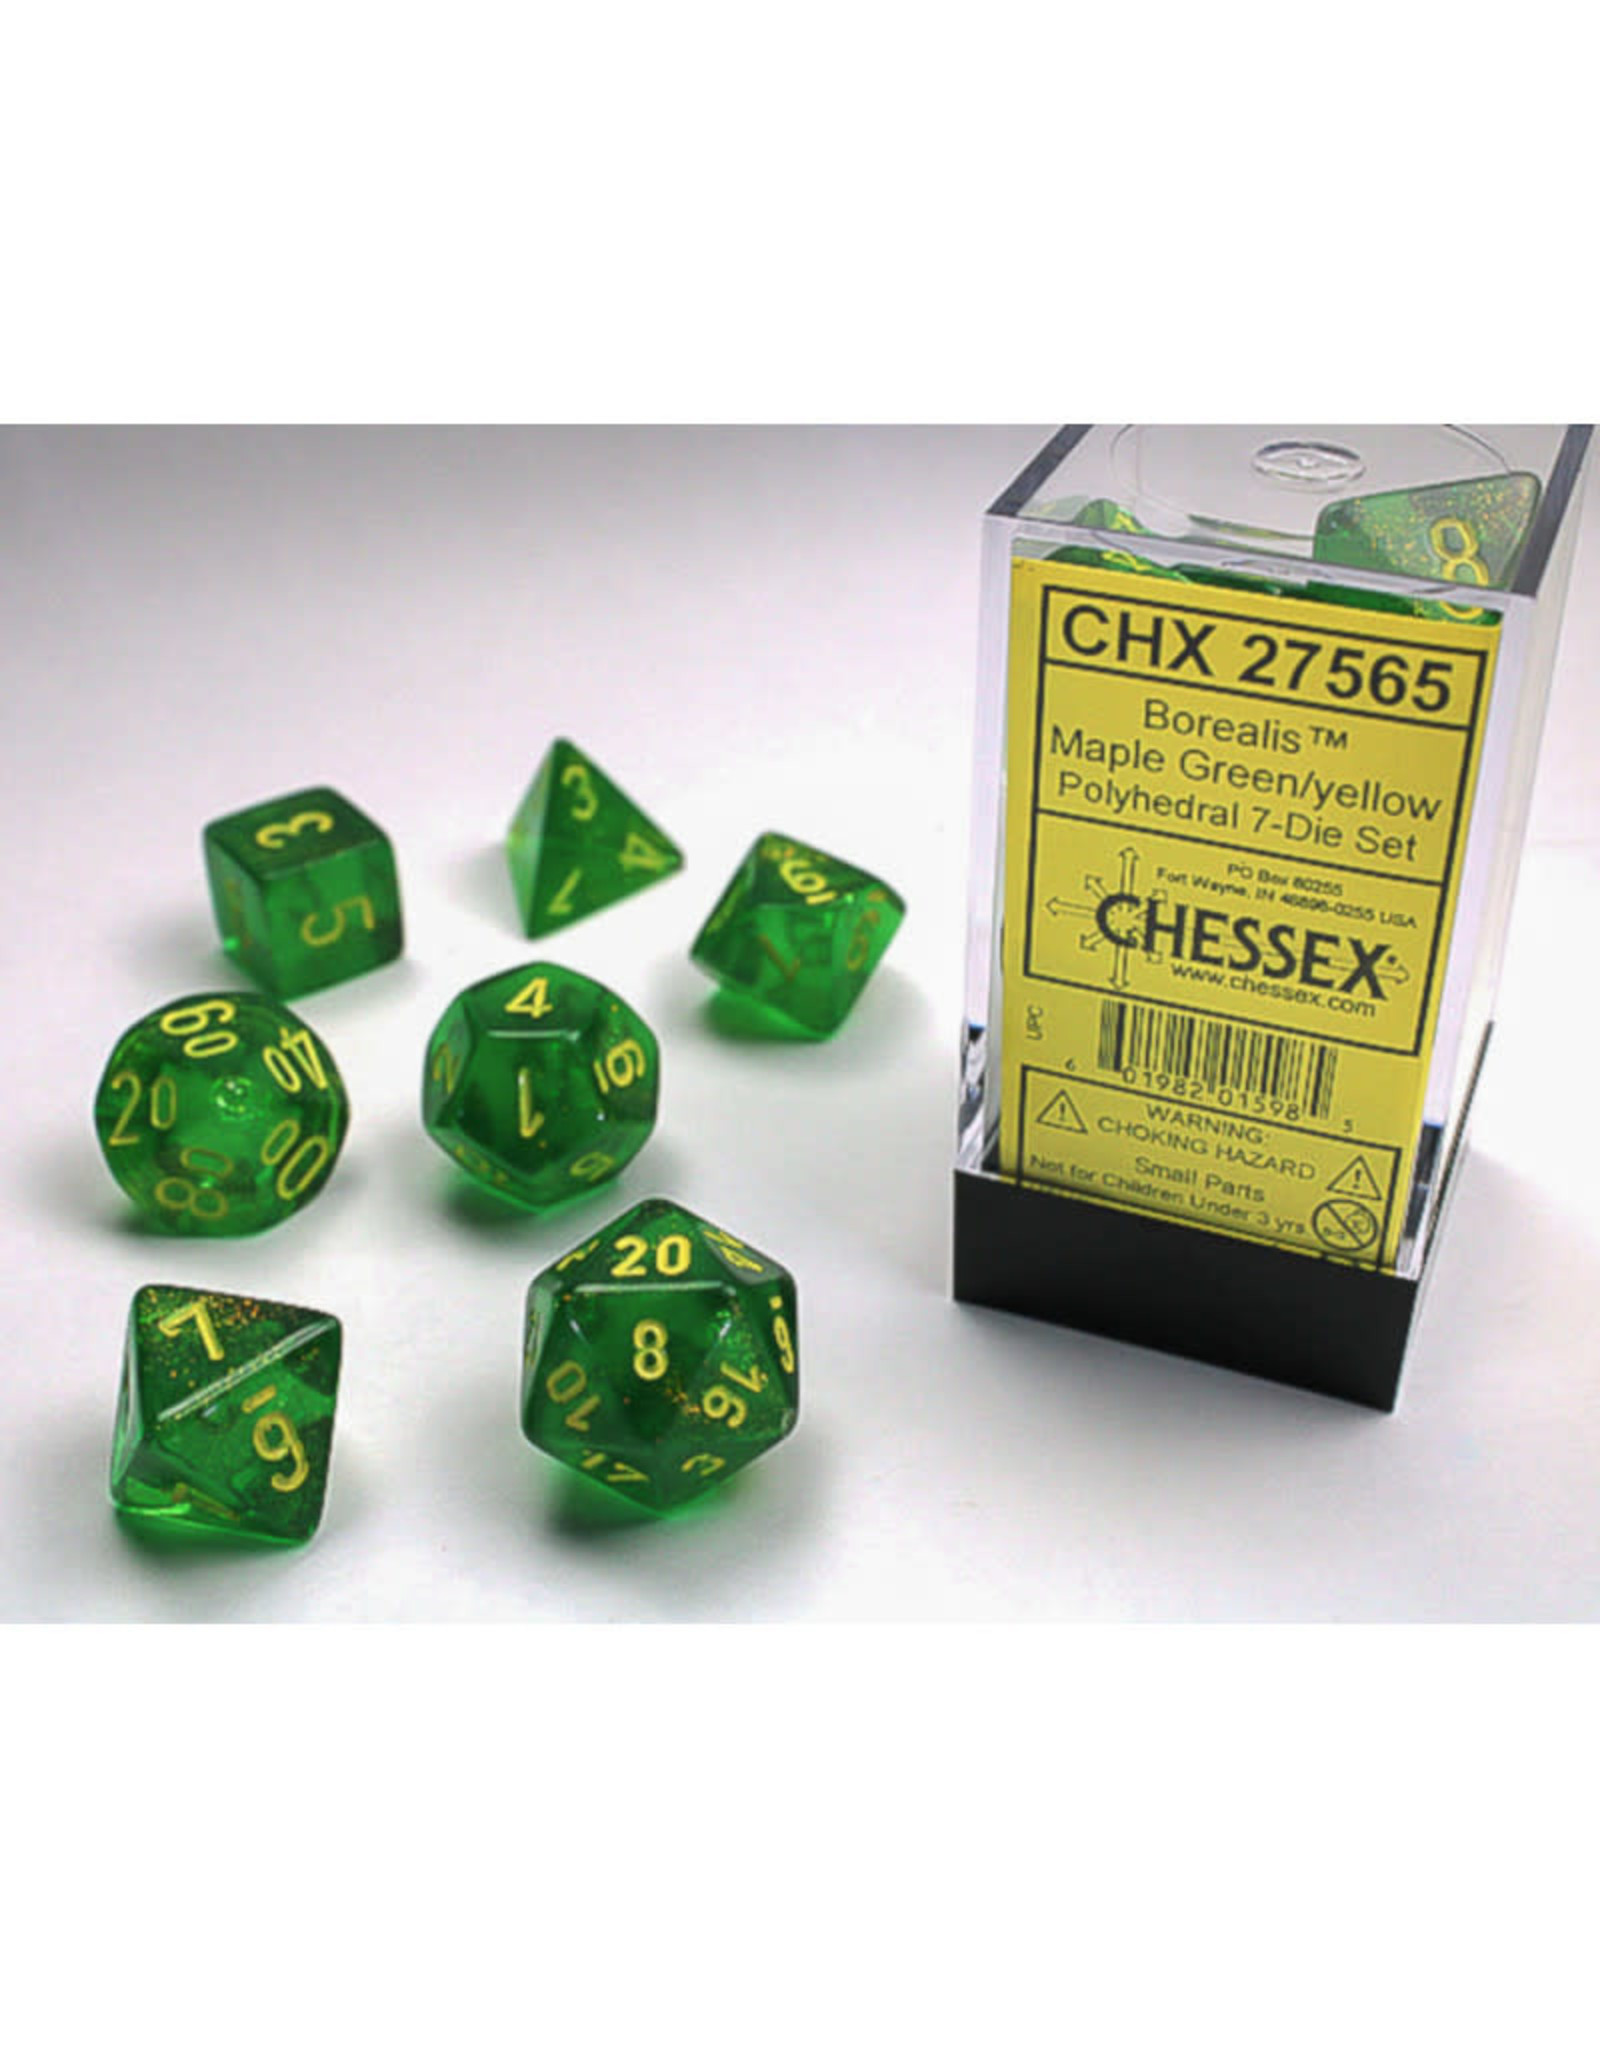 Chessex Polyhedral Dice Set: Borealis Maple Green/Yellow (7)